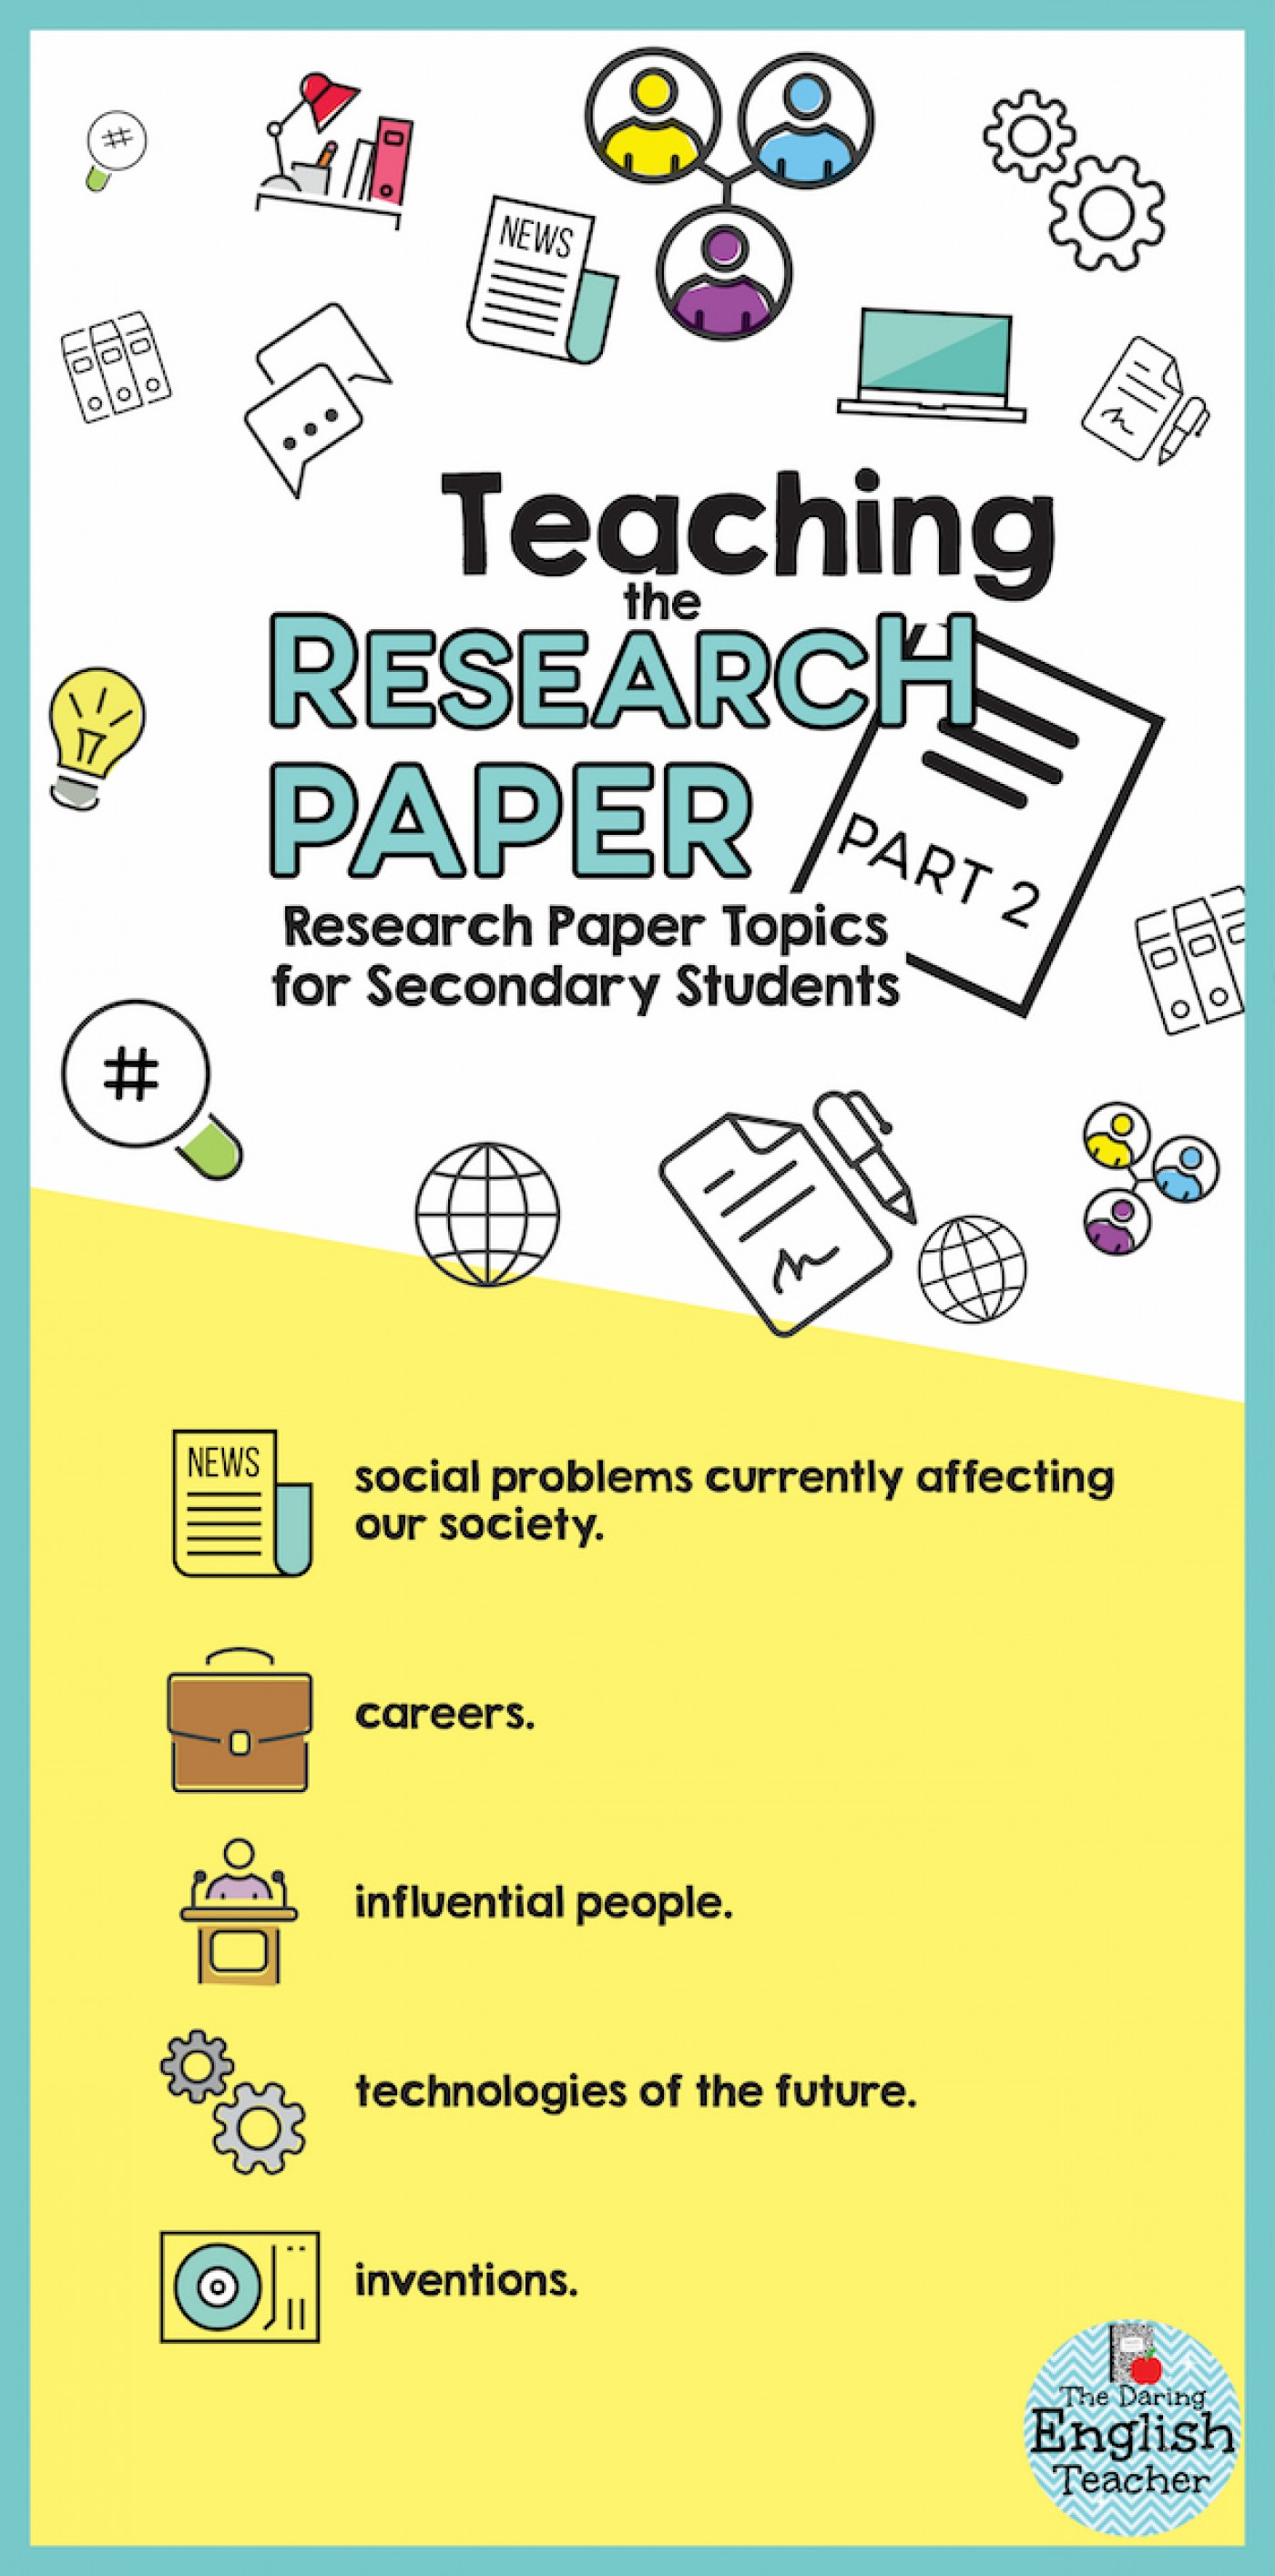 020 Infographic2bp22b2 Research Paper Topic For Unusual A Topics On Education Frankenstein Special 1400